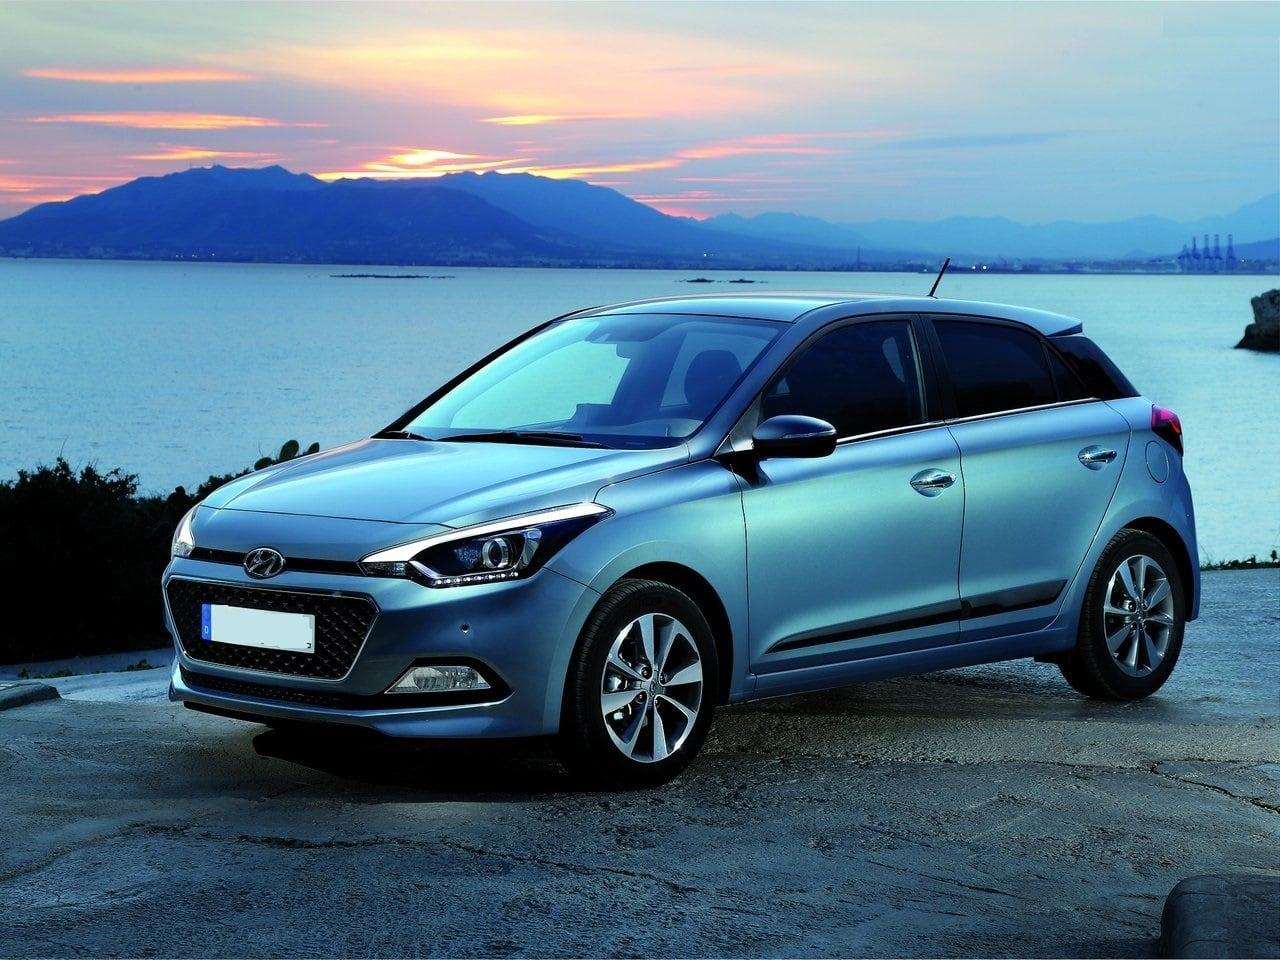 2017 hyundai elite i20 facelift price specifications mileage launch date features colours. Black Bedroom Furniture Sets. Home Design Ideas